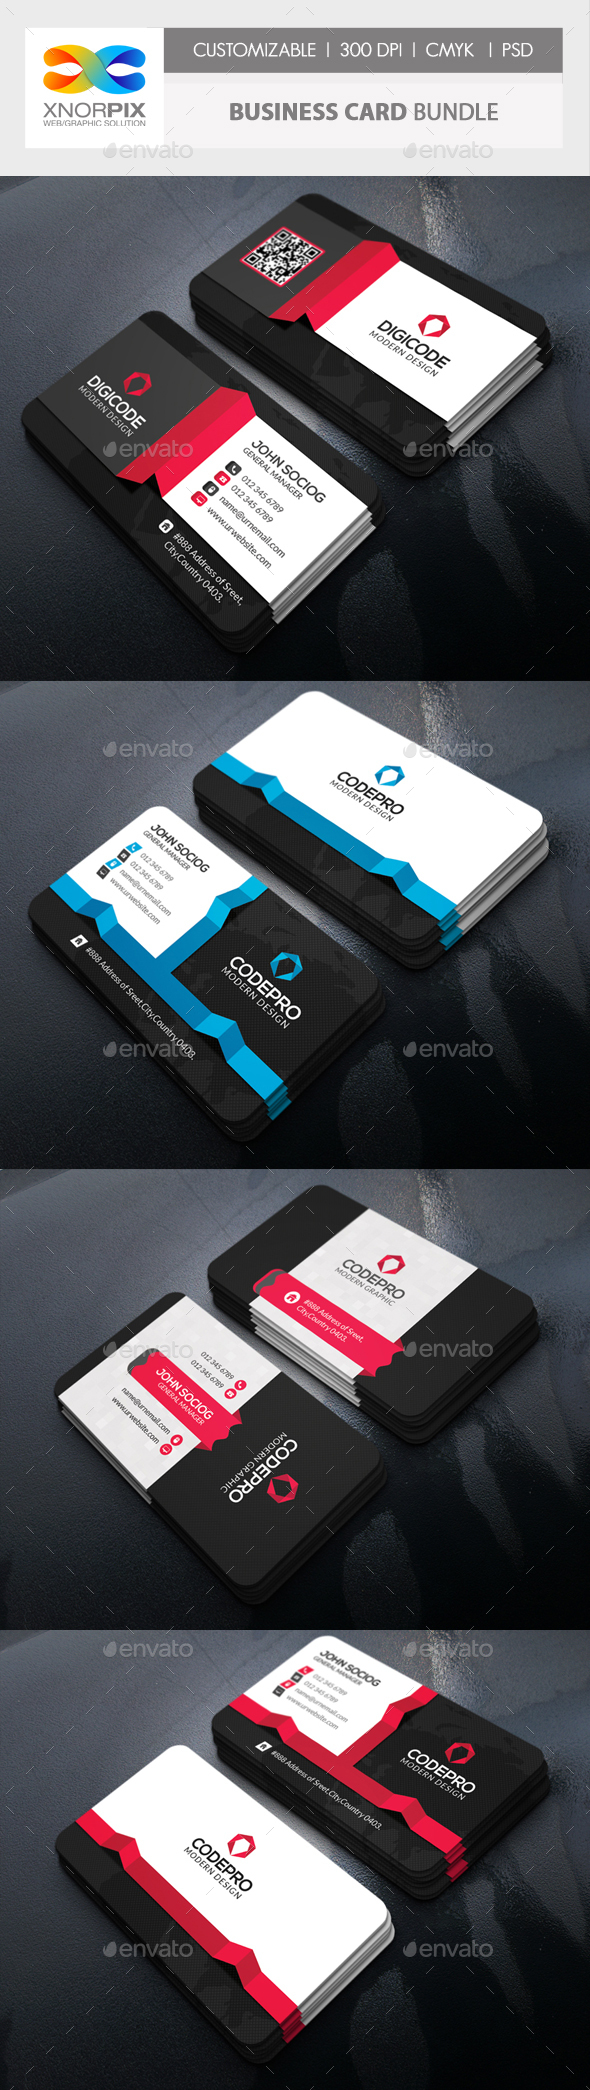 Business Card Bundle 3 in 1-Vol 65 - Corporate Business Cards